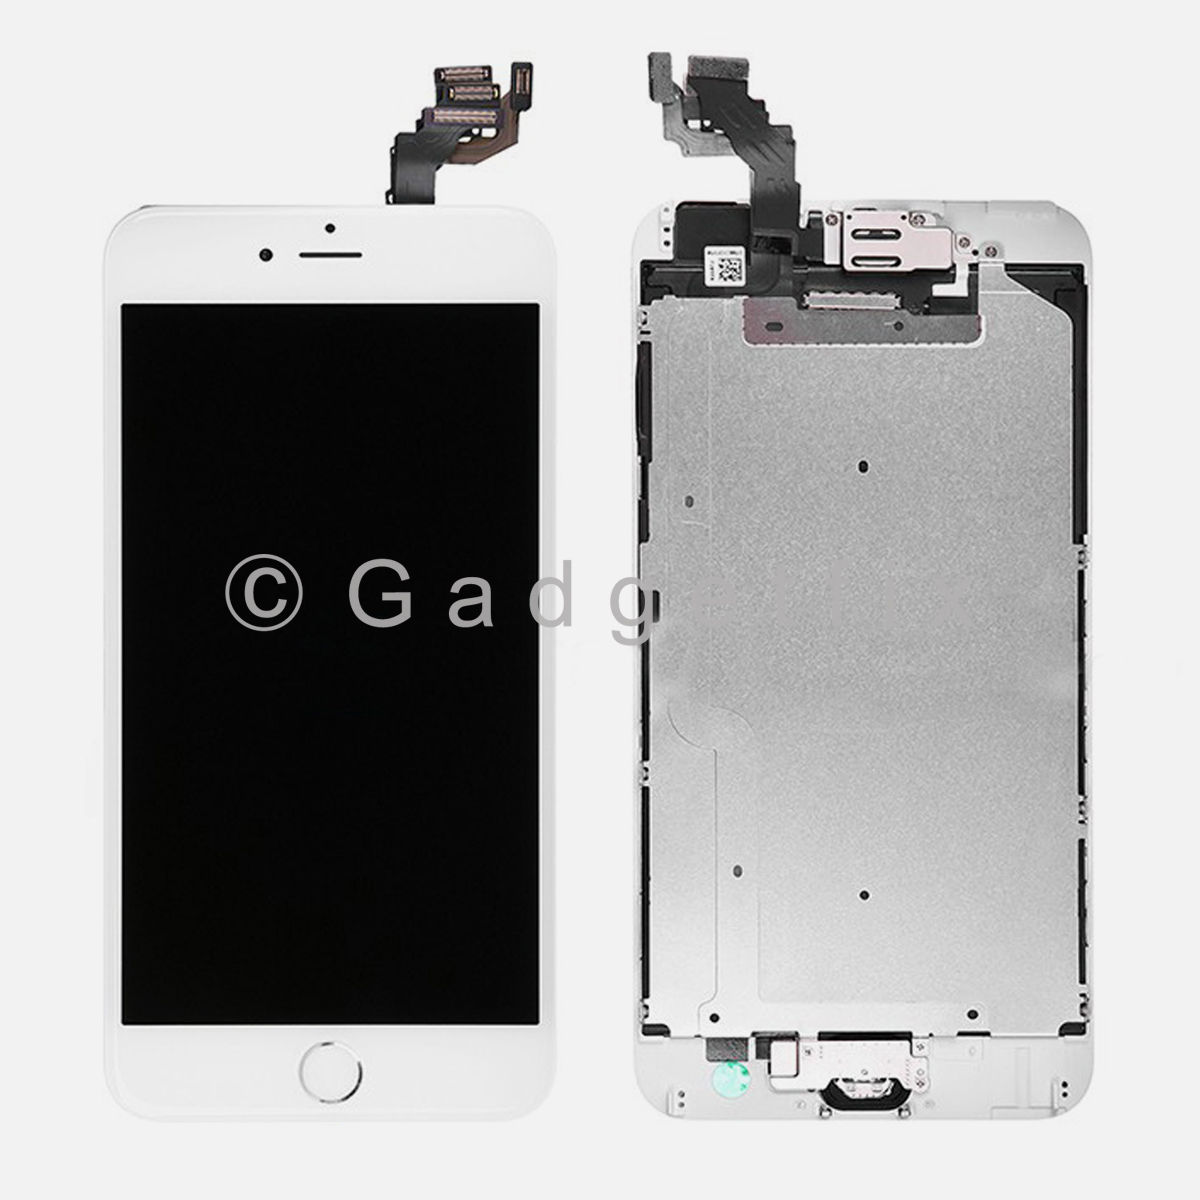 White LCD Touch Screen Digitizer + Camera + Silver Button for iphone 6 Plus